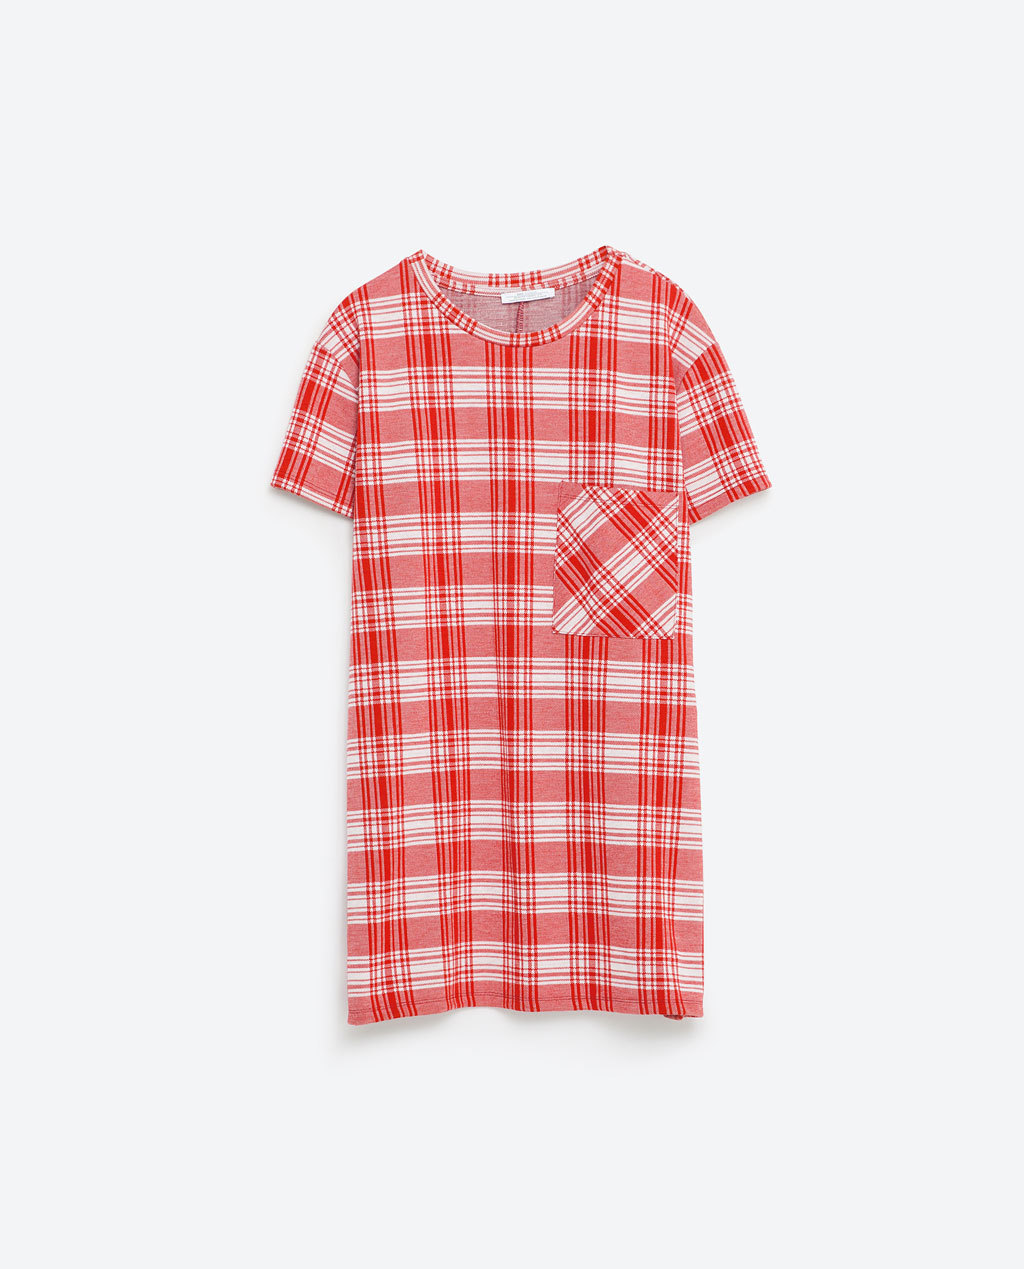 Check T Shirt - neckline: round neck; pattern: checked/gingham; length: below the bottom; style: t-shirt; bust detail: subtle bust detail; predominant colour: true red; occasions: casual; fibres: cotton - stretch; fit: straight cut; sleeve length: short sleeve; sleeve style: standard; pattern type: fabric; texture group: jersey - stretchy/drapey; pattern size: big & busy (top); season: s/s 2016; wardrobe: highlight